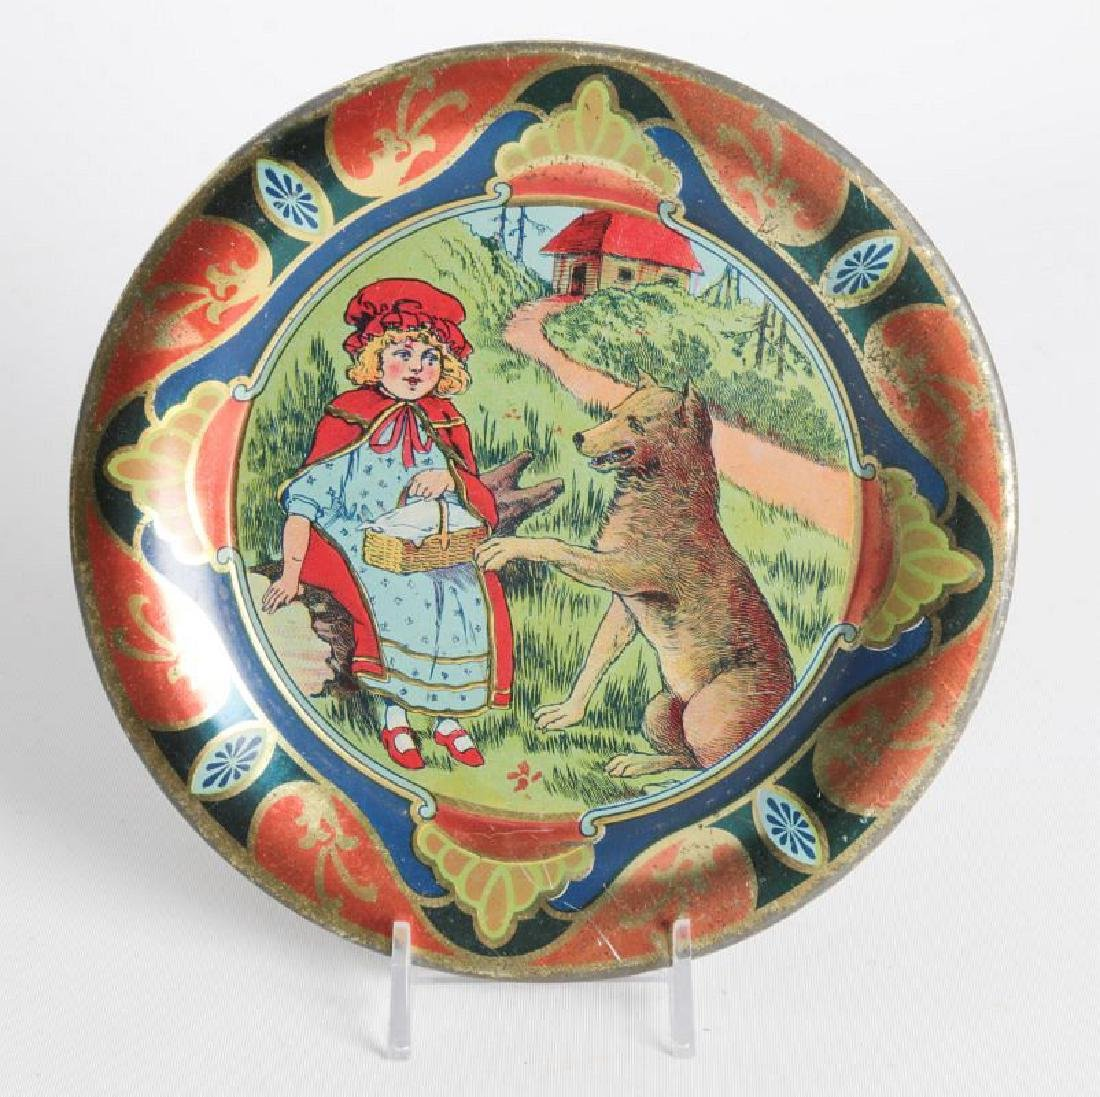 A RED RIDING HOOD TIN LITHO CHILD'S PLATE